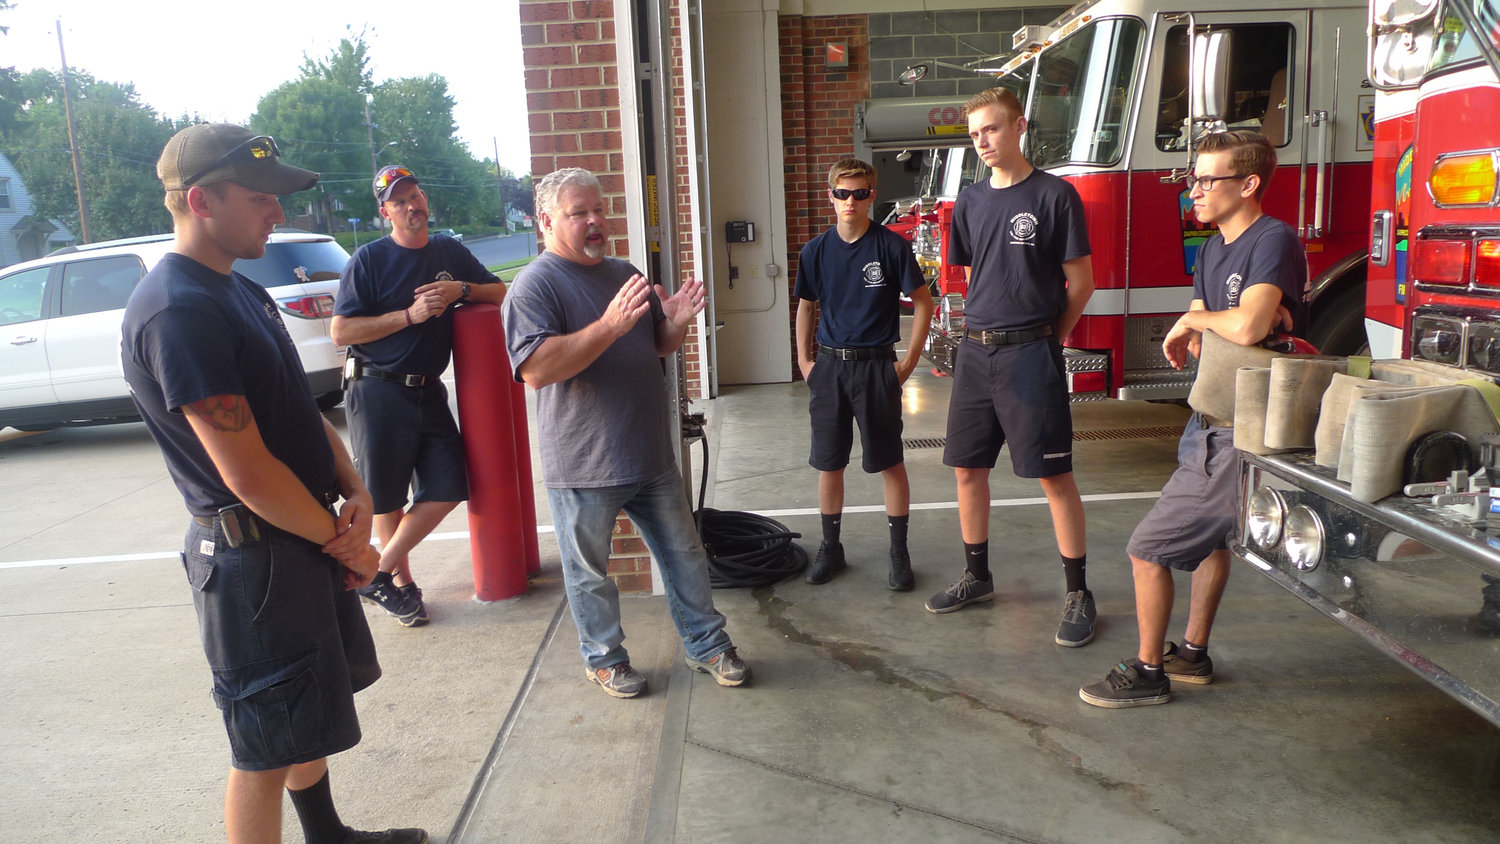 Middletown Fire Marshal Mick Shrauder (gesturing, third from left), prepares the live-ins and other firefighters before going to Frey Village to observe and evaluate a fire drill. From left is Zach Cleland, Lieutenant Daryl Tripp, Shrauder, Christian Slesser, Storm Fickes, and Kody Krupilis.